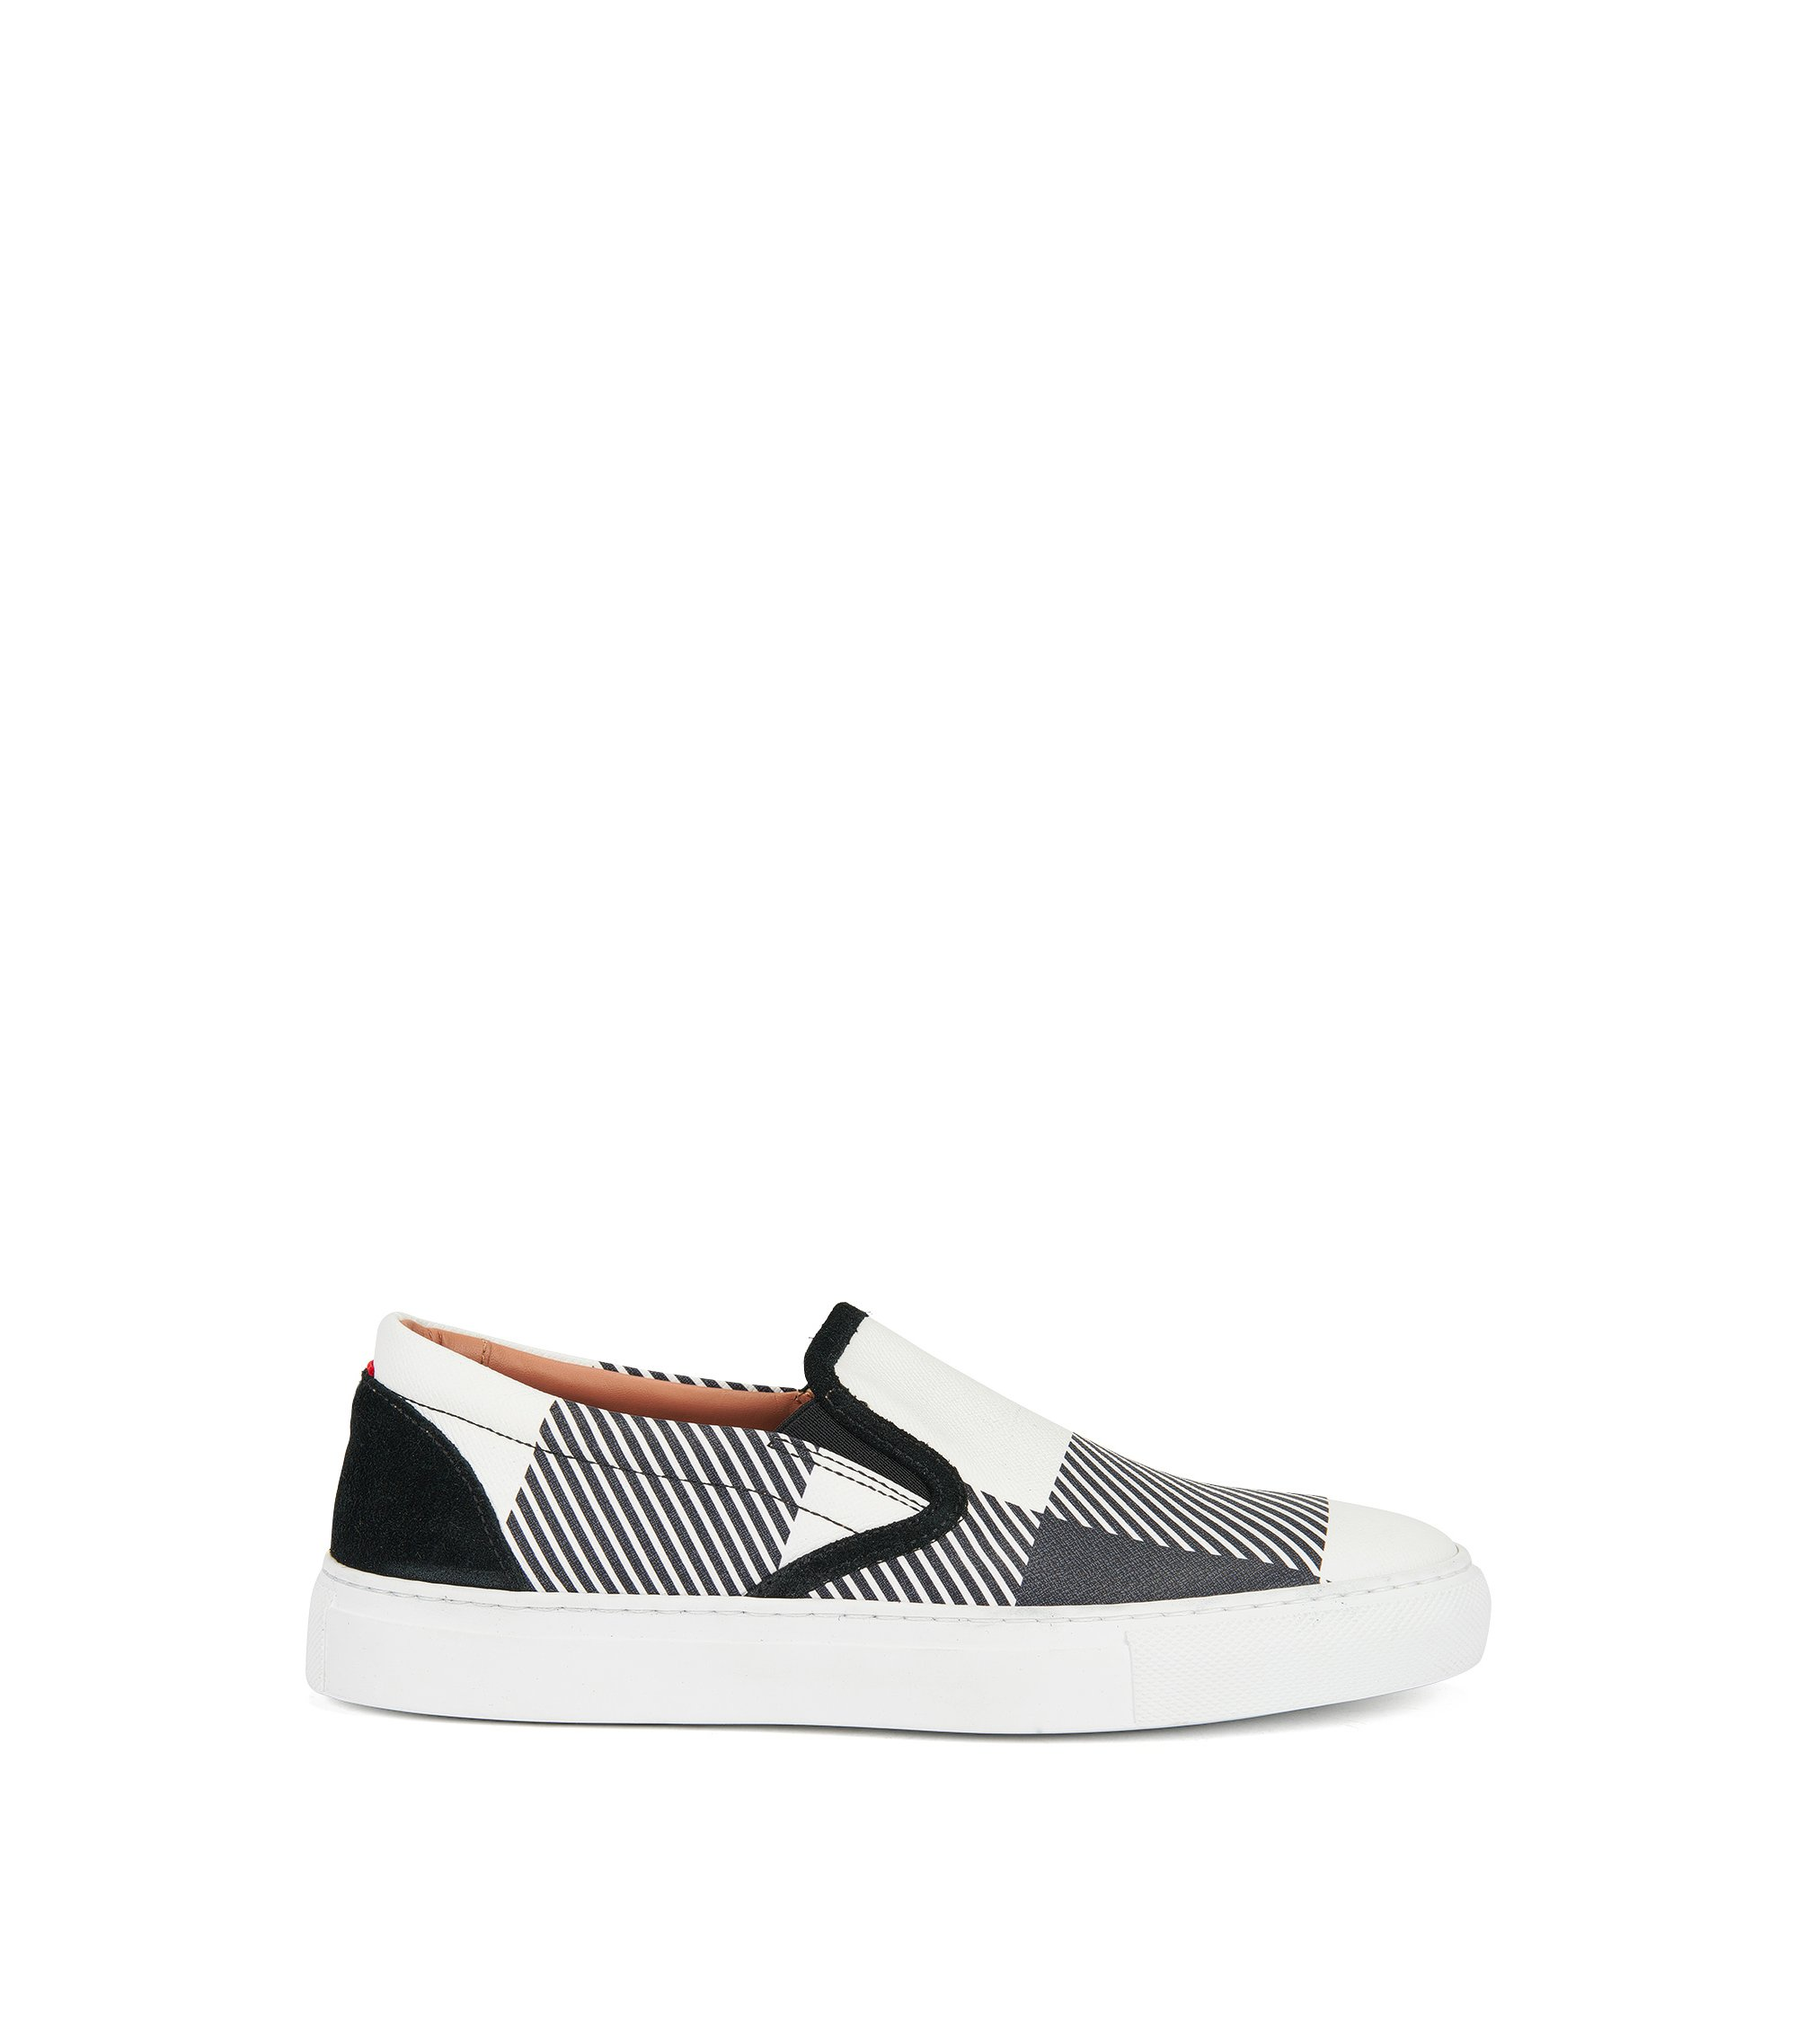 Leather Slip-On Shoe | Slip On-ST, Dark Blue